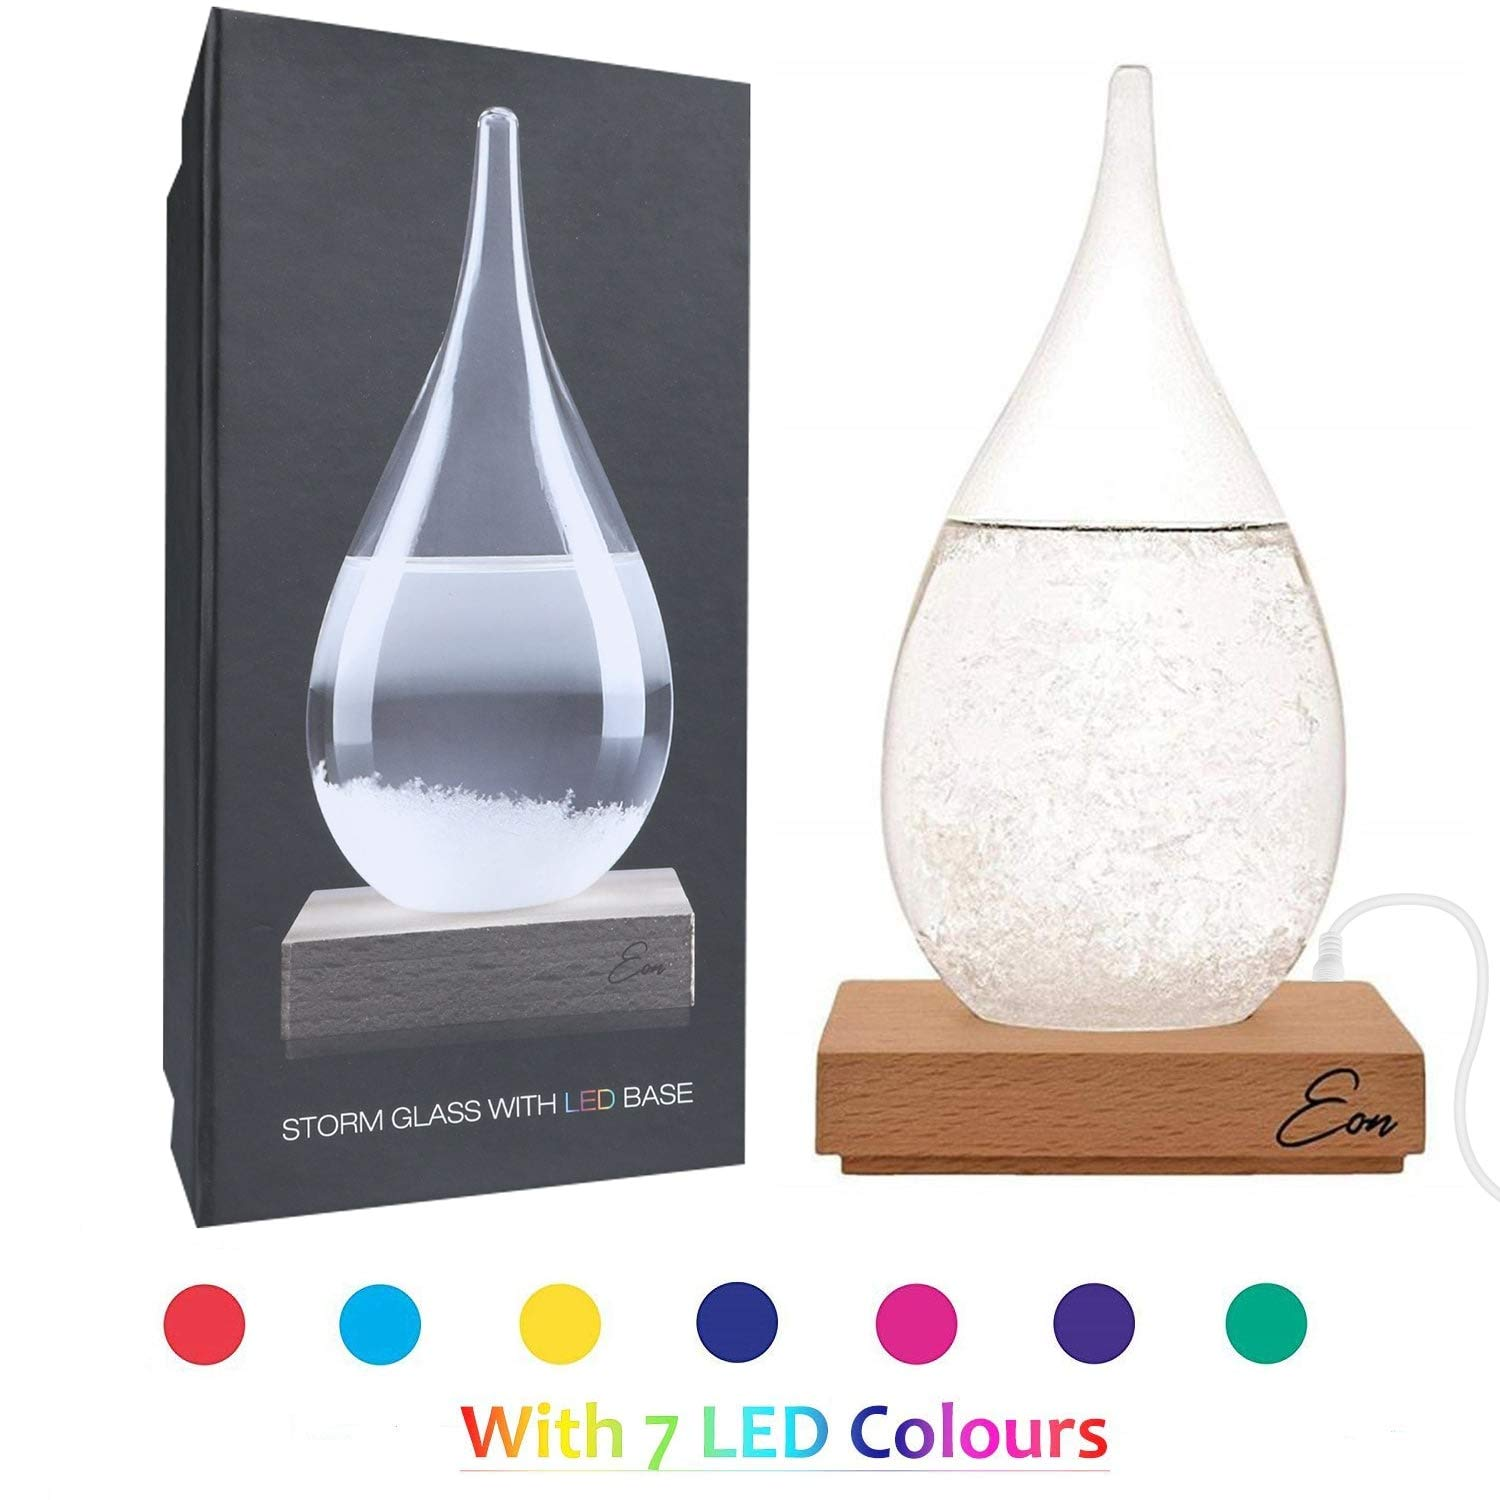 Eon Concepts Storm Glass Weather Predictor - Barometer Bottle with Stunning & Colorful LED Wood Base | Decorative Centerpiece for Home & Office | Perfect Birthday Friendship Novelty Unique Gift Idea by Eon Concepts